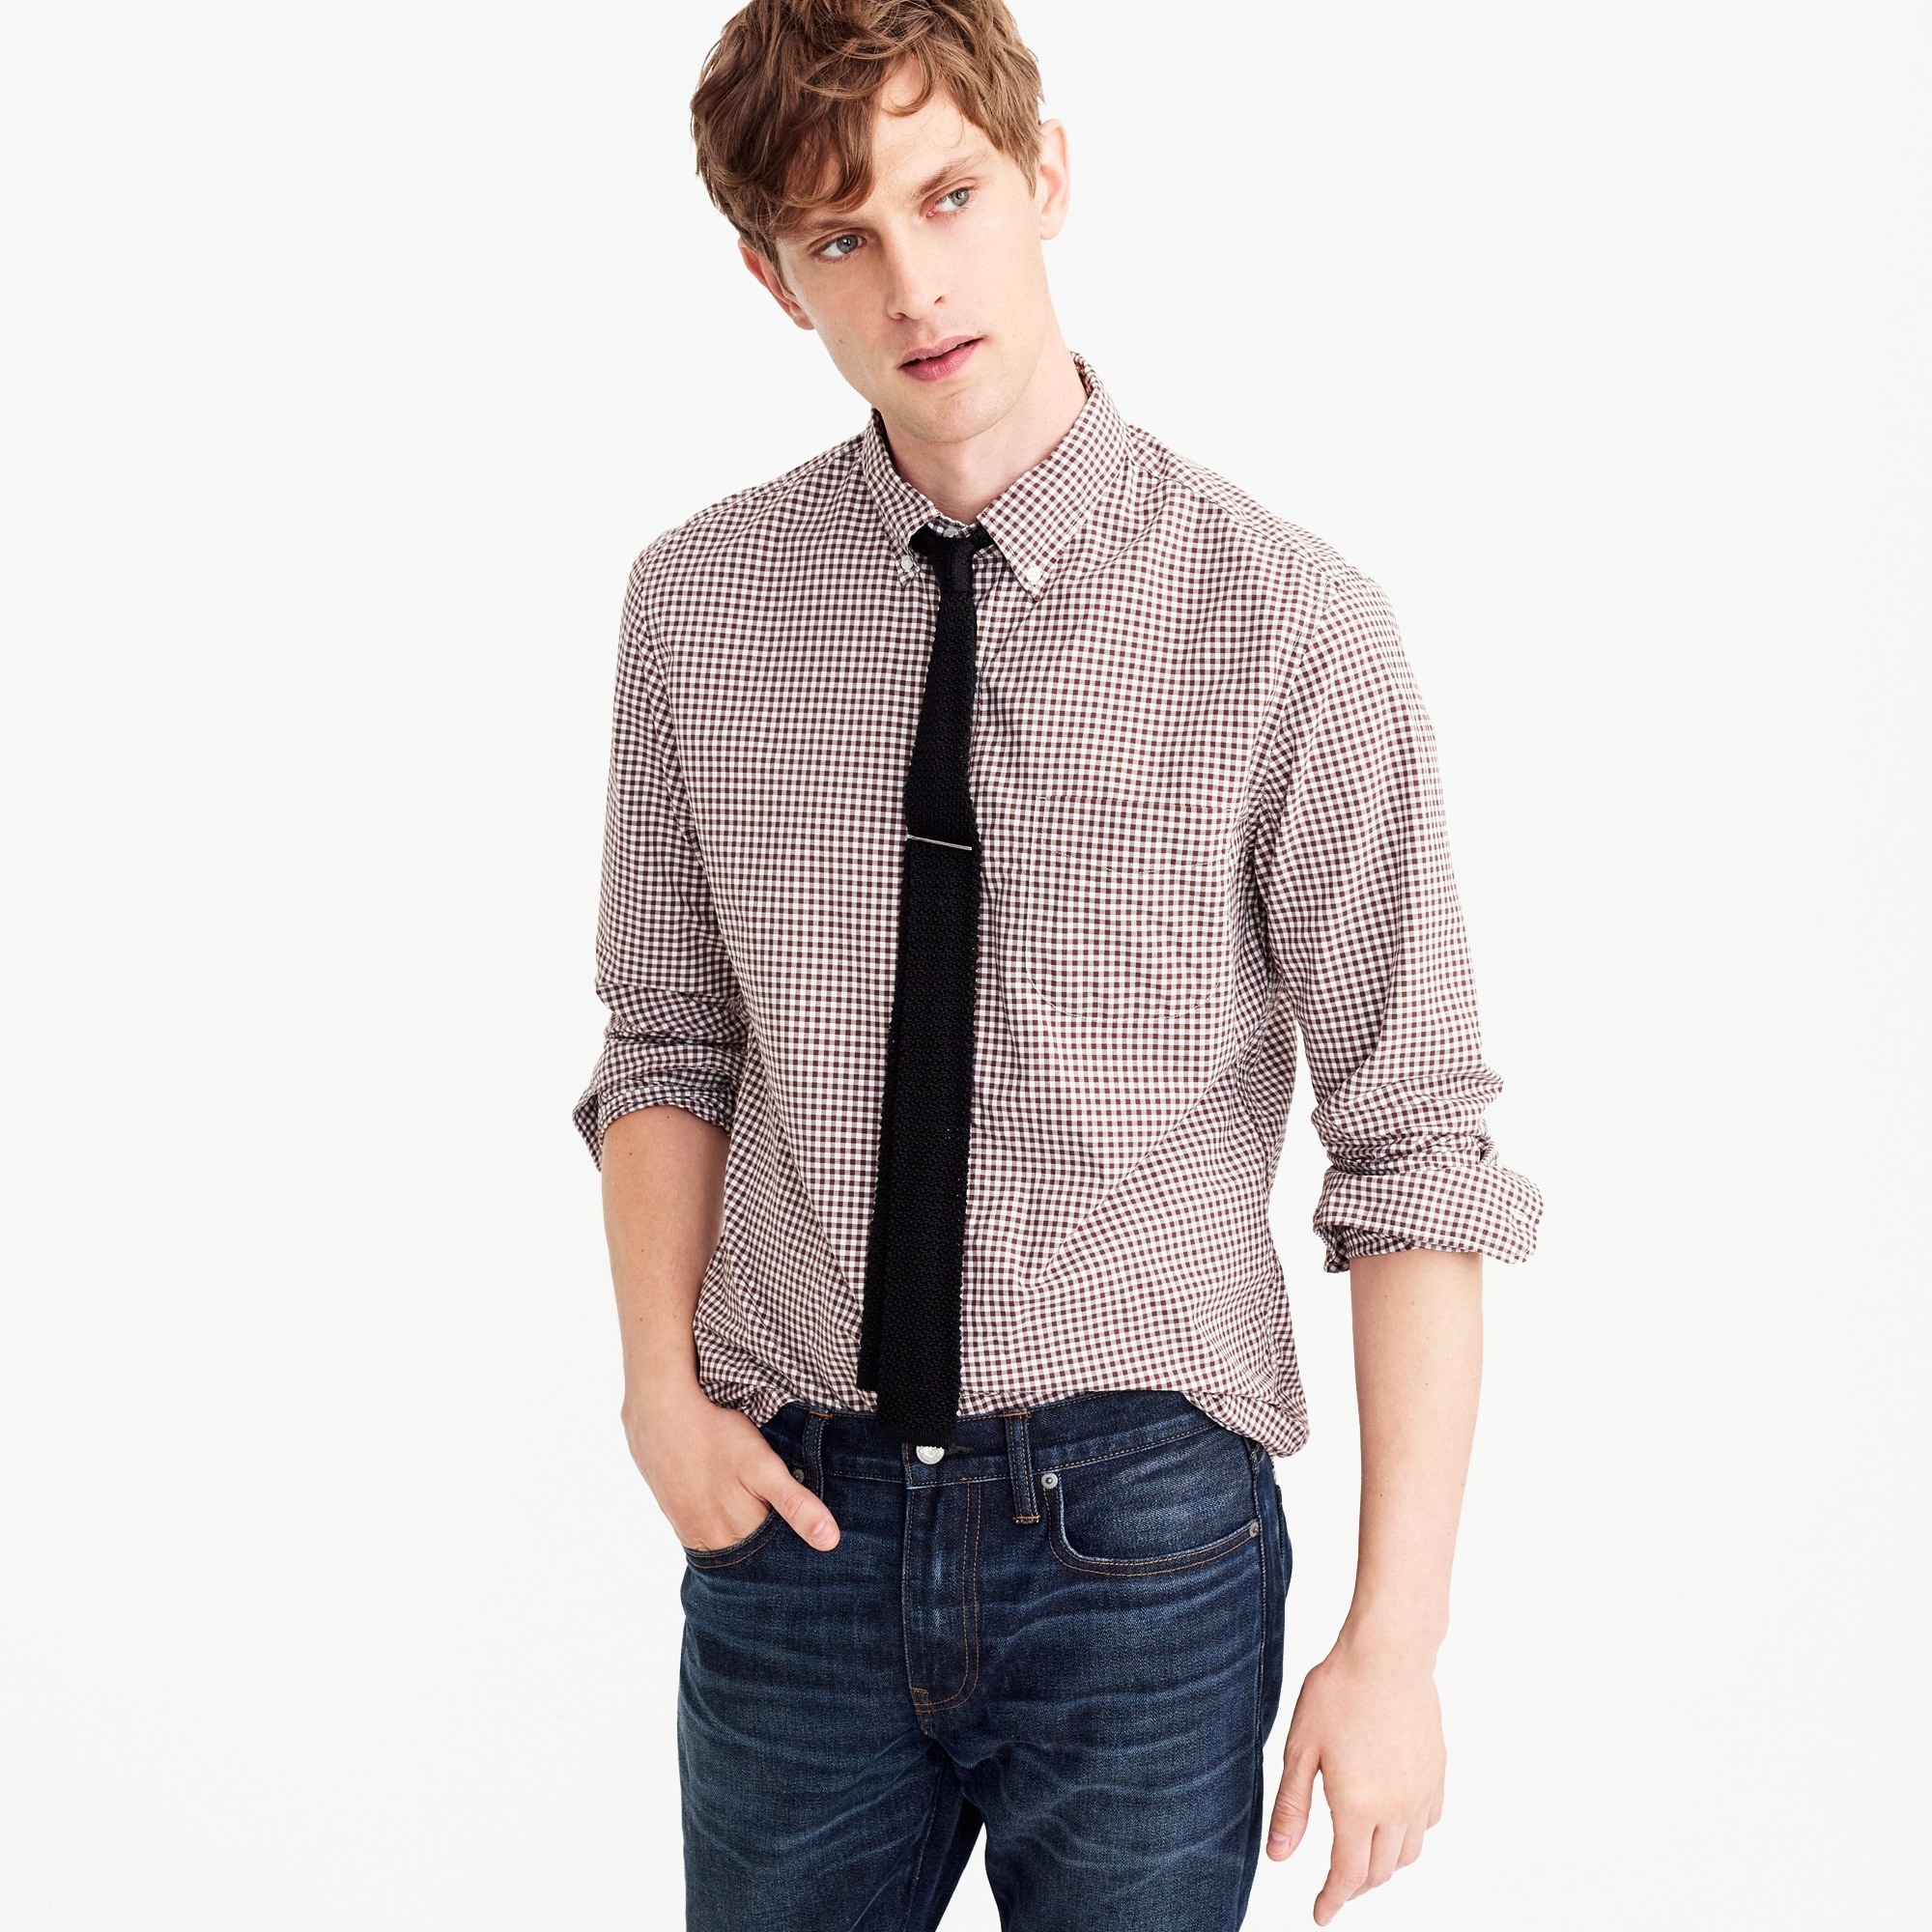 secret wash shirt in classic gingham : men's shirts